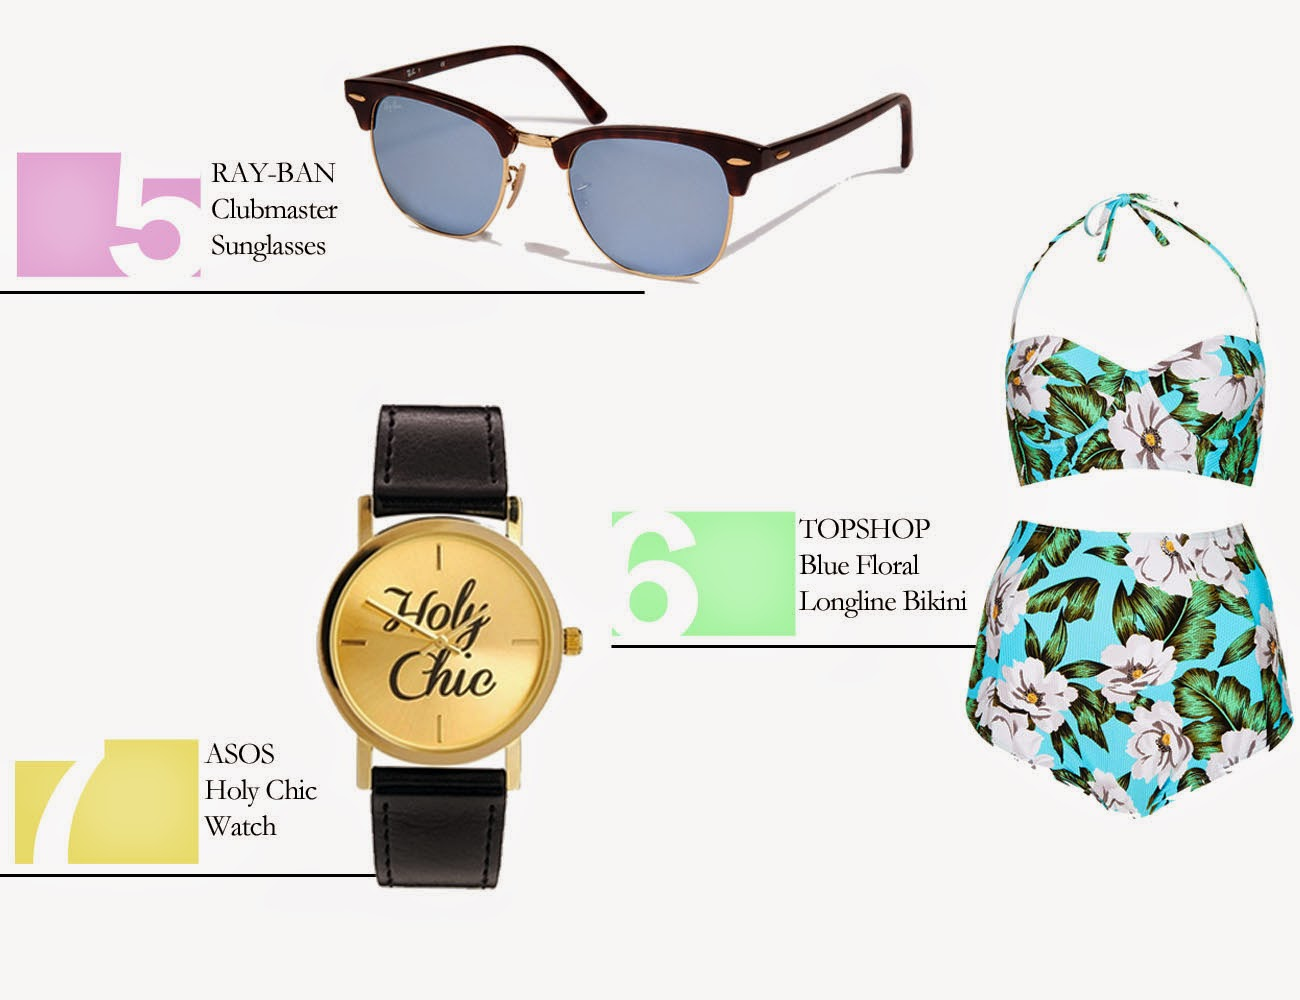 5. Ray-Ban Clubmaster Sunglasses // 6. TOPSHOP Blue Floral Longline Bikini // 7. ASOS Holy Chic Watch